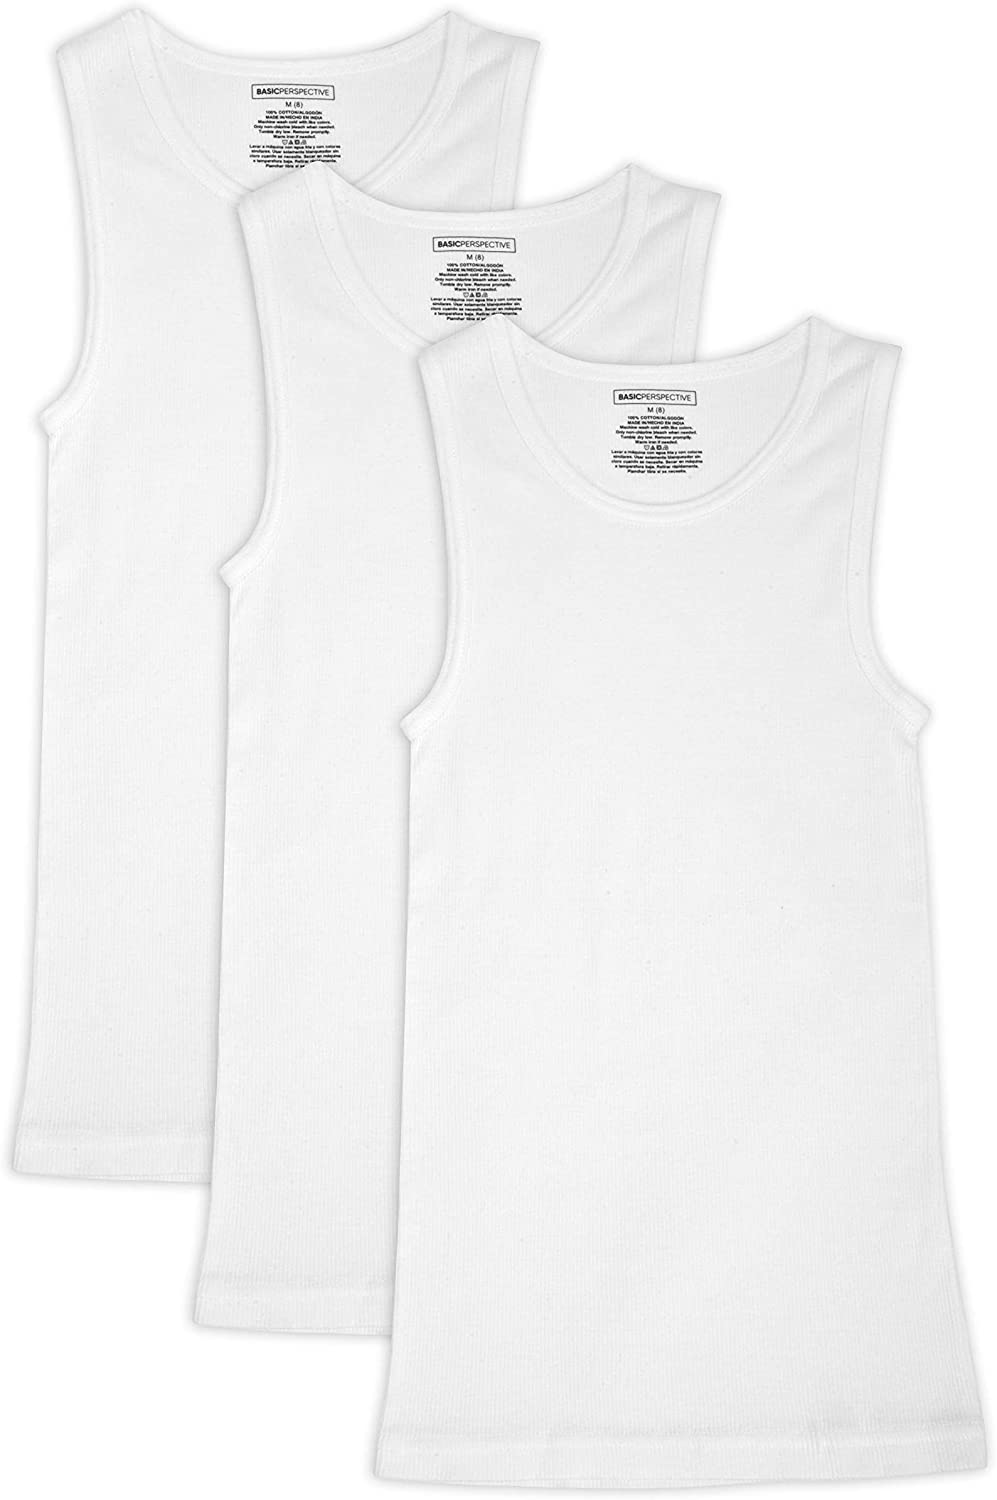 Basic Perspective Boy's A-Shirt Tagless Cotton Tank Top Undershirt, Pack of 3